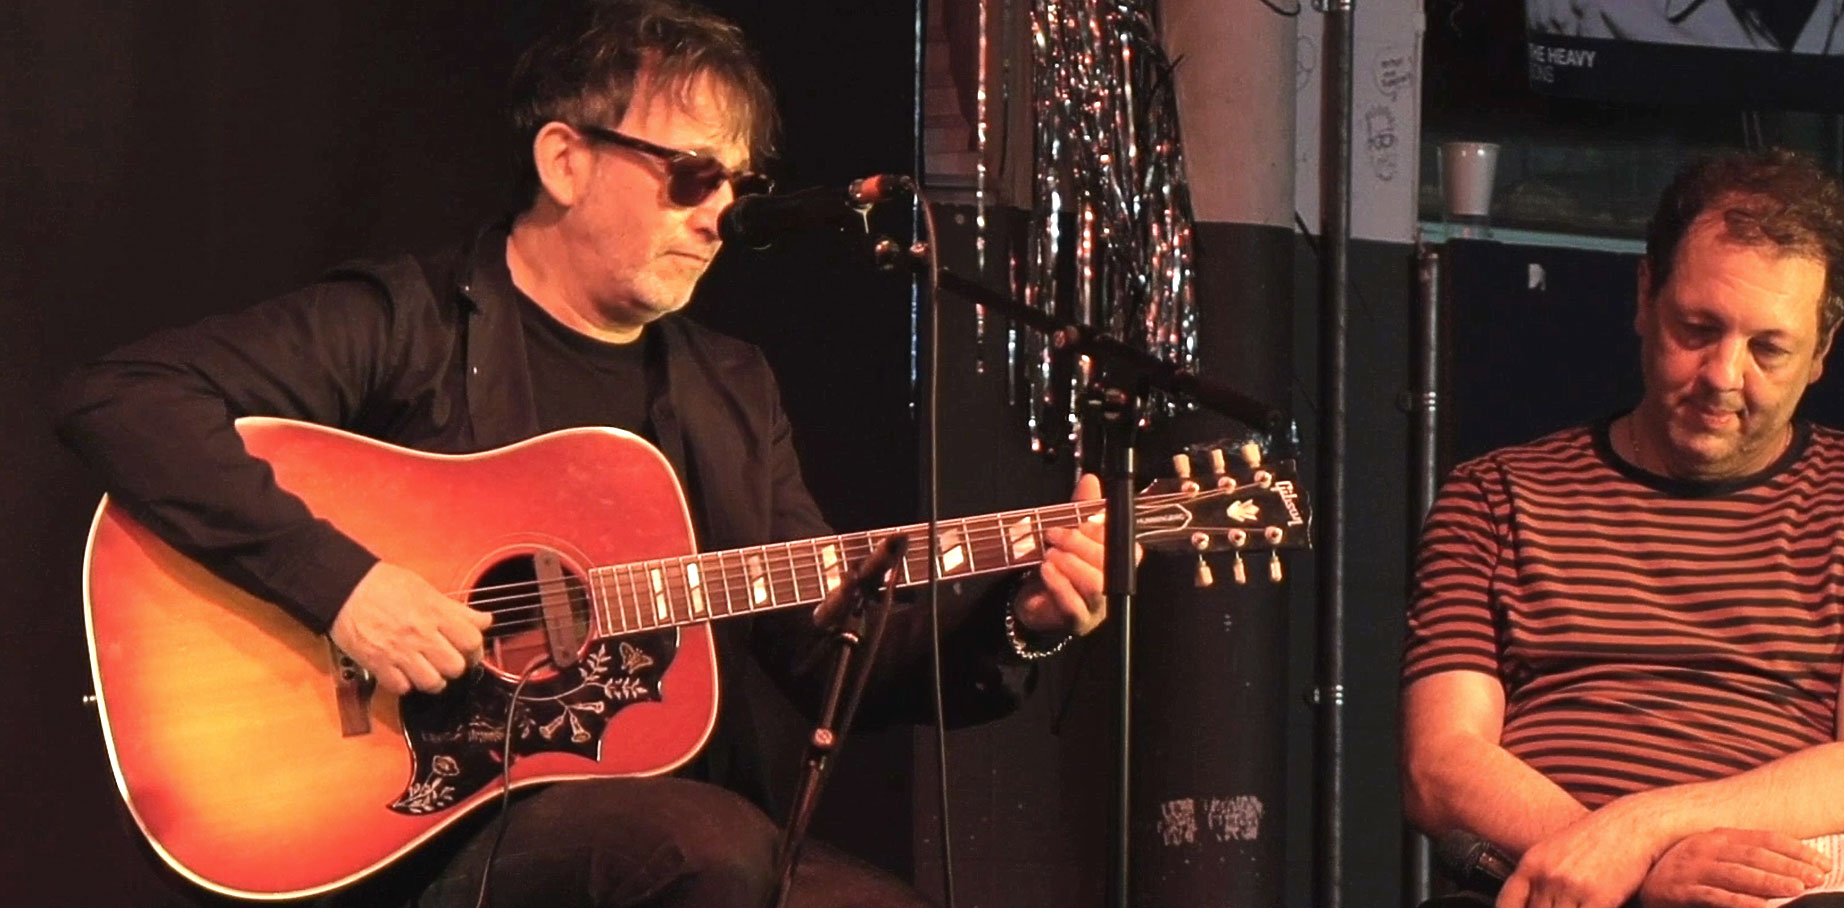 Ian Broudie - Song For No One, live at Rough Trade, Mon Jun 17, 2019